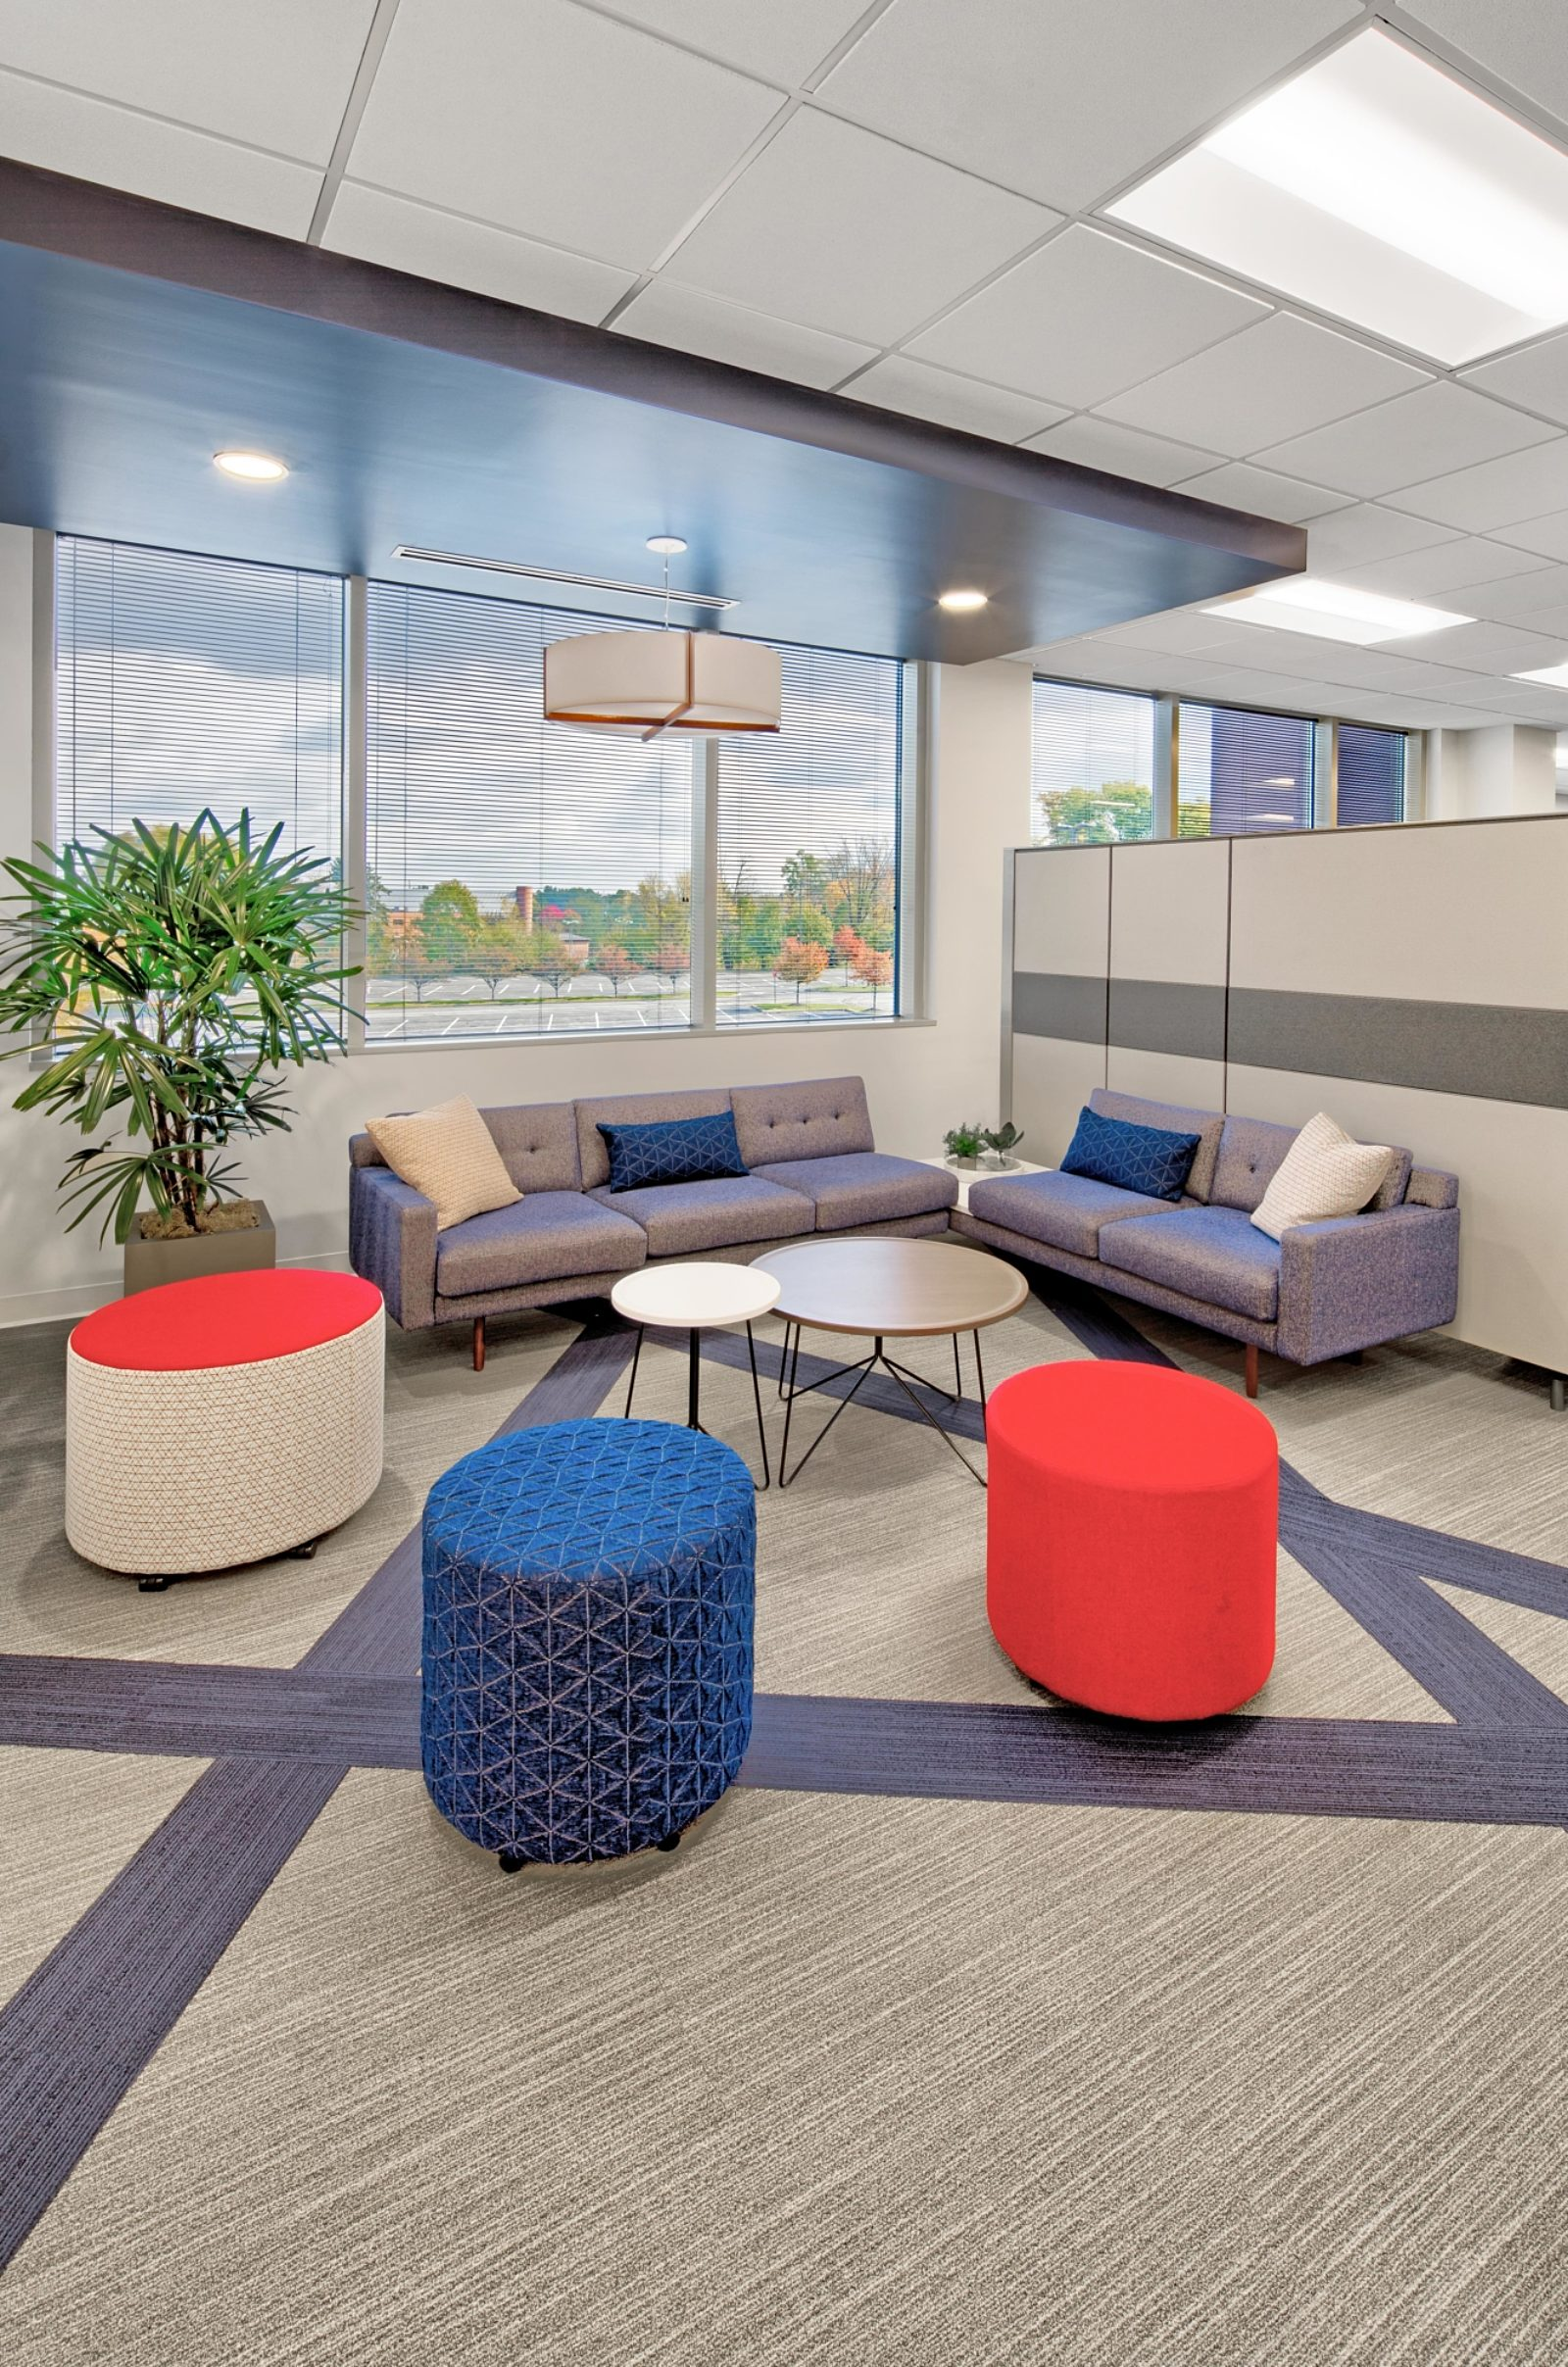 INCPAS Project Highlight: Open seating area with windows